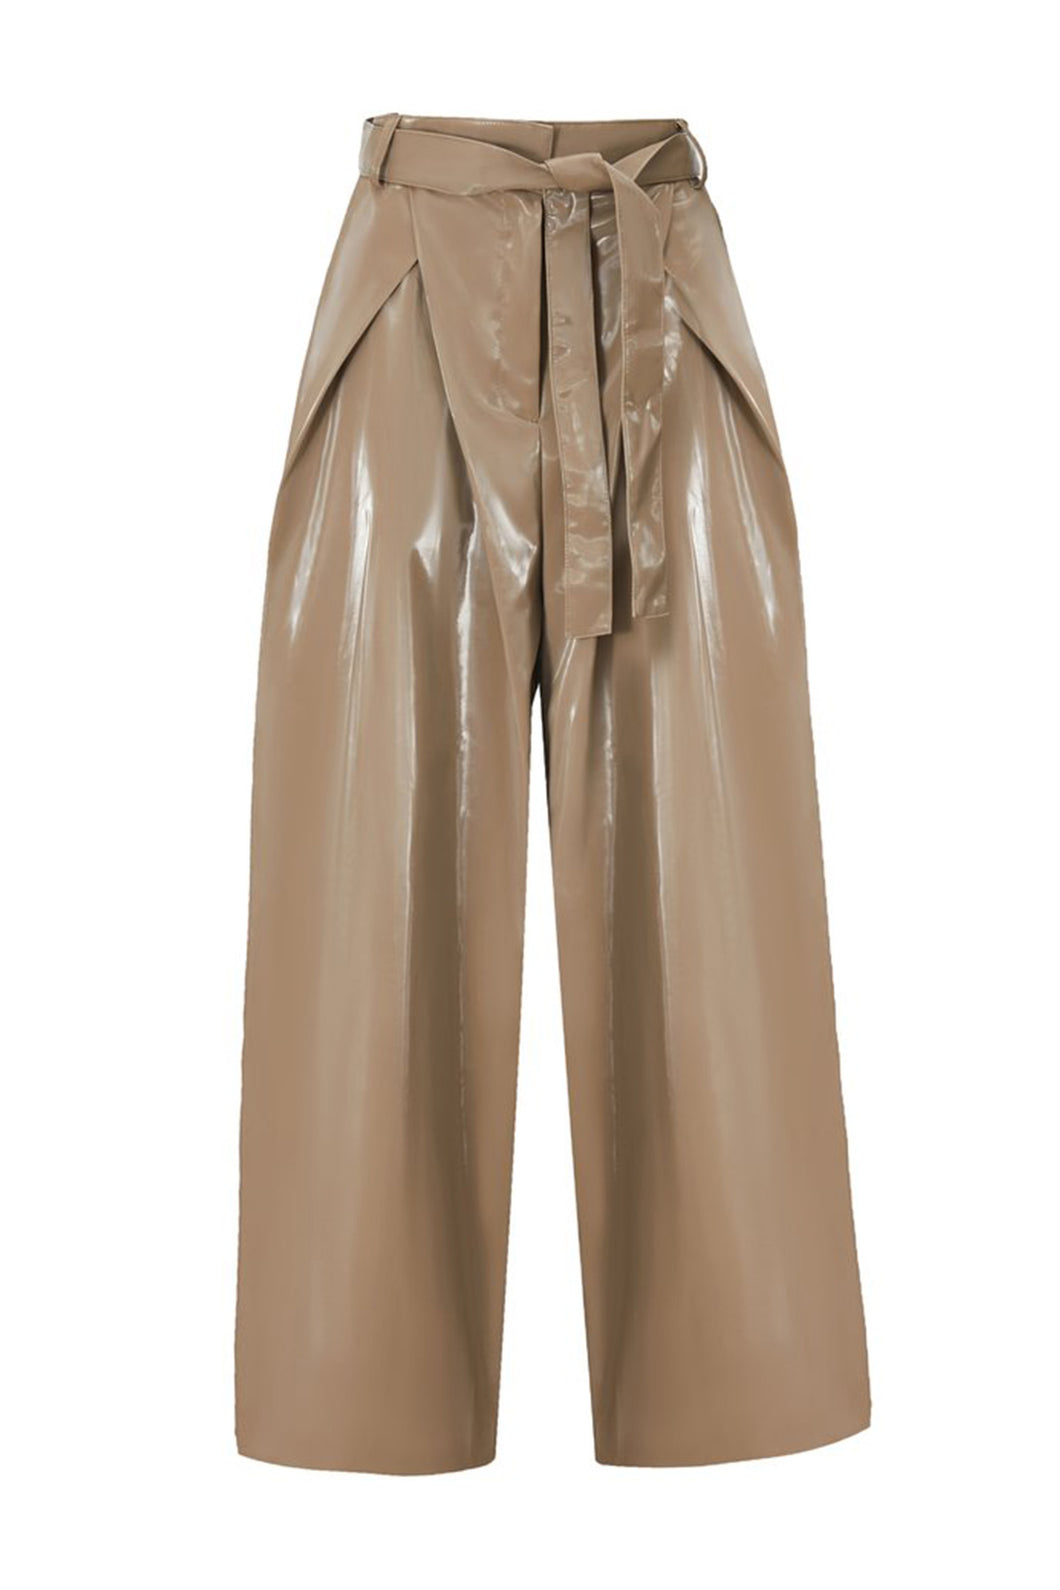 LICI LEATHER PANTS